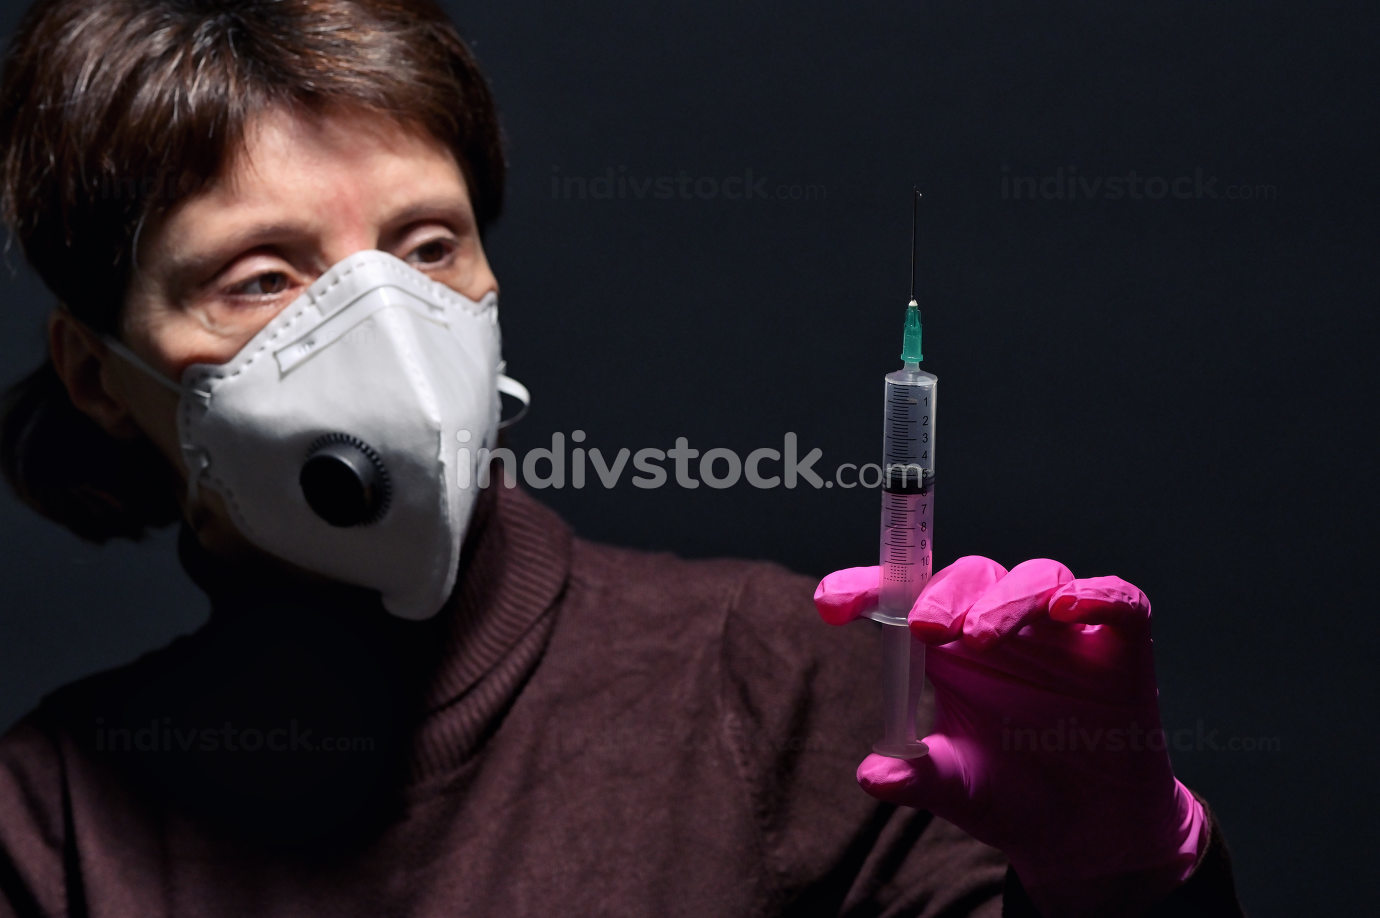 Woman Wearing Medical Protective Mask and Syringe